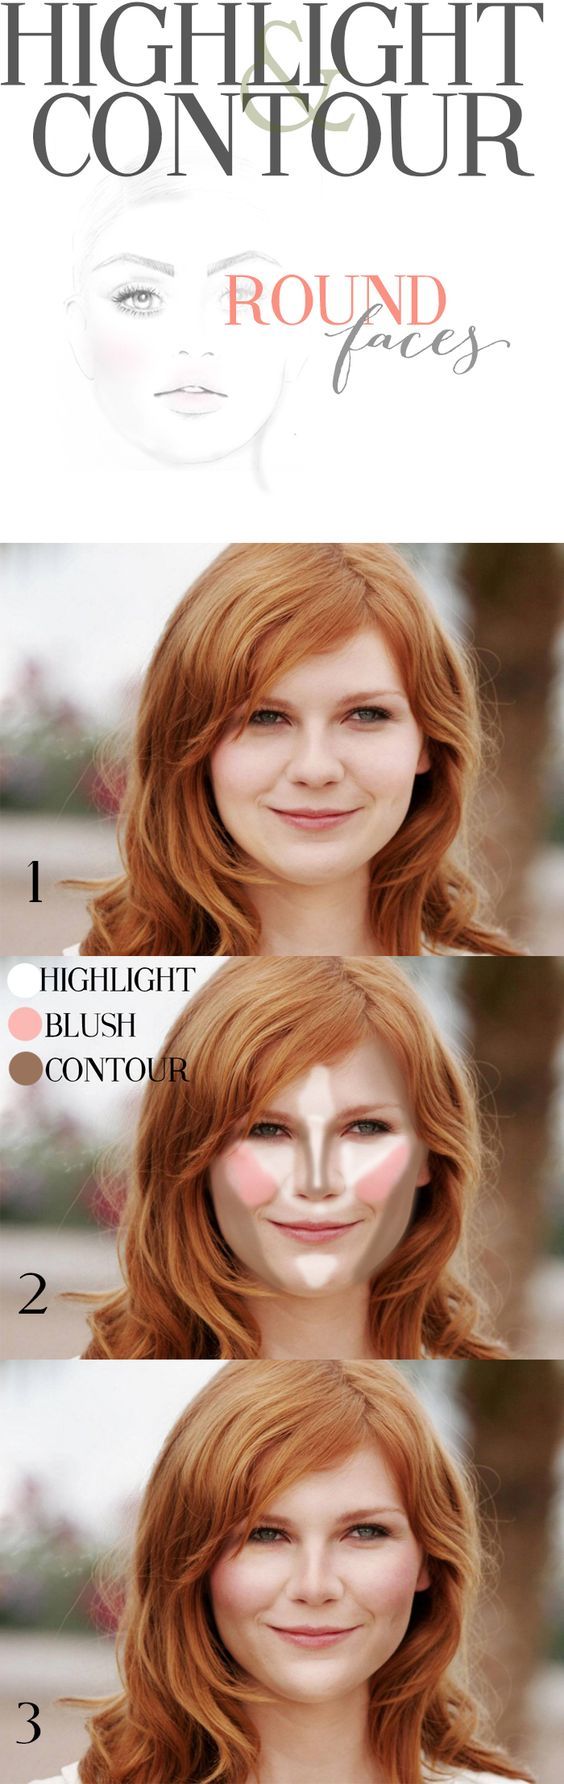 Makeup tricks, Highlights and Face shapes on Pinterest